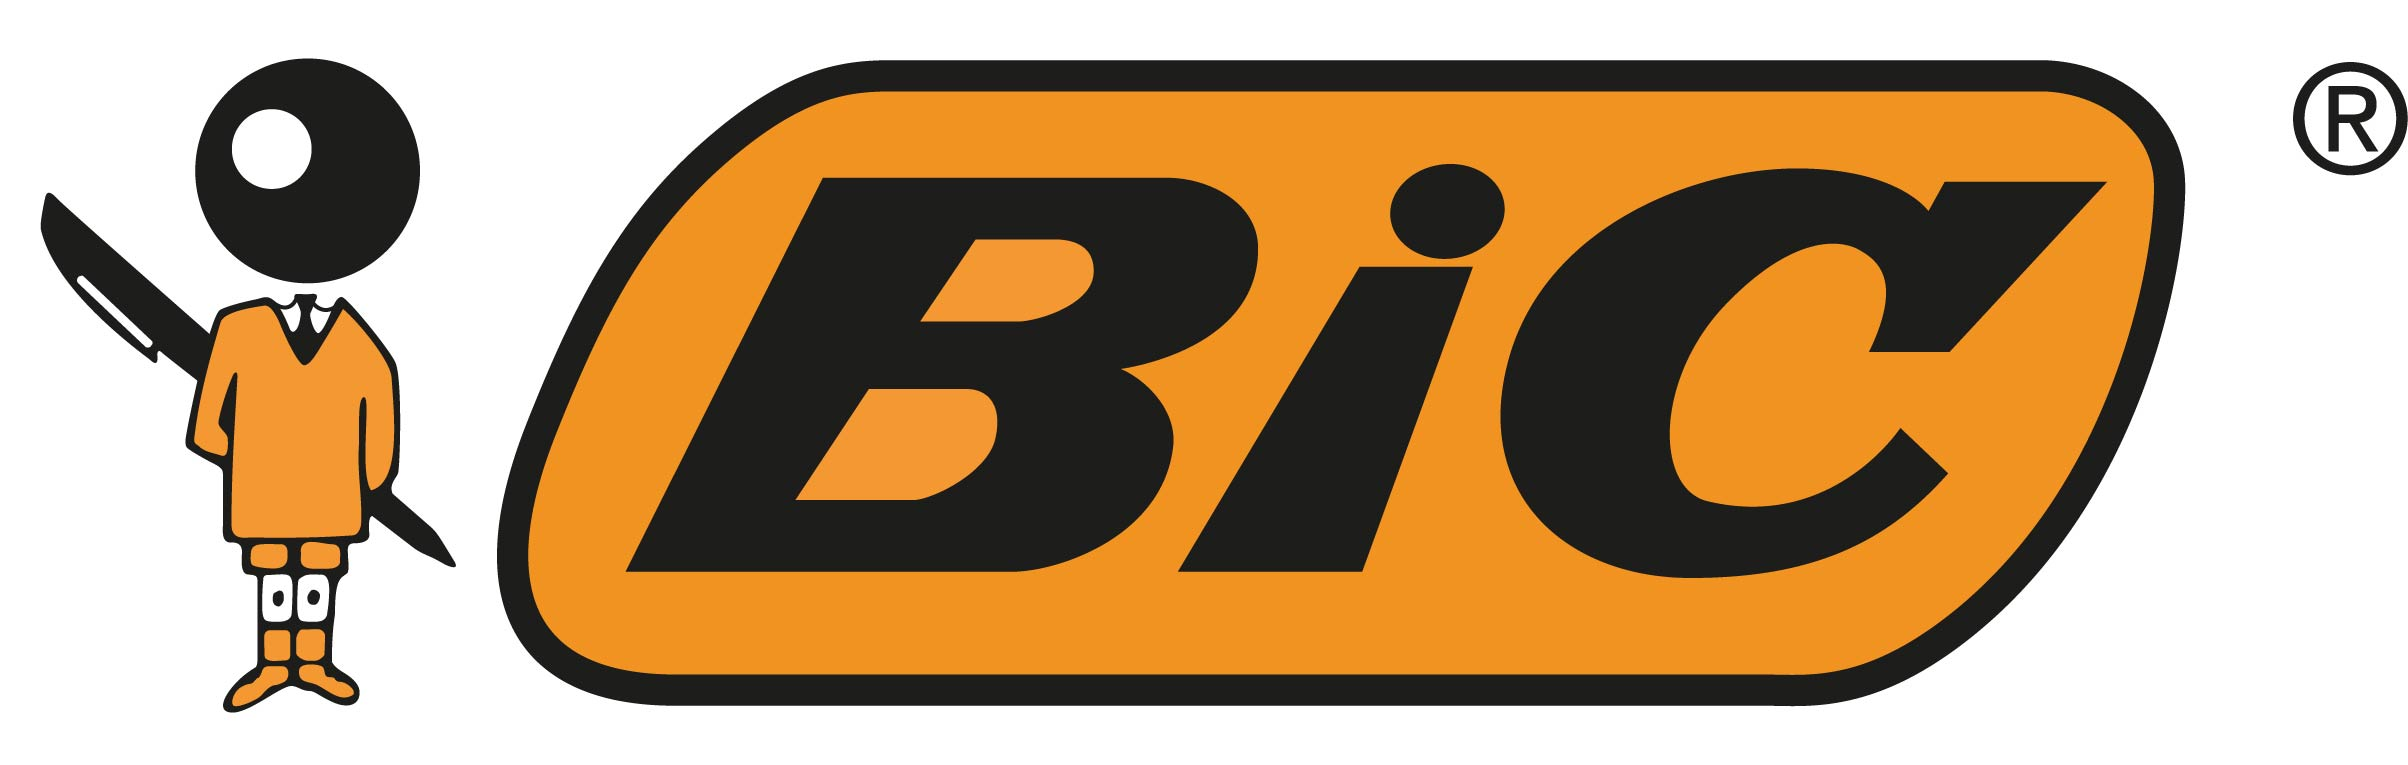 Bic logotype orange bic rvb